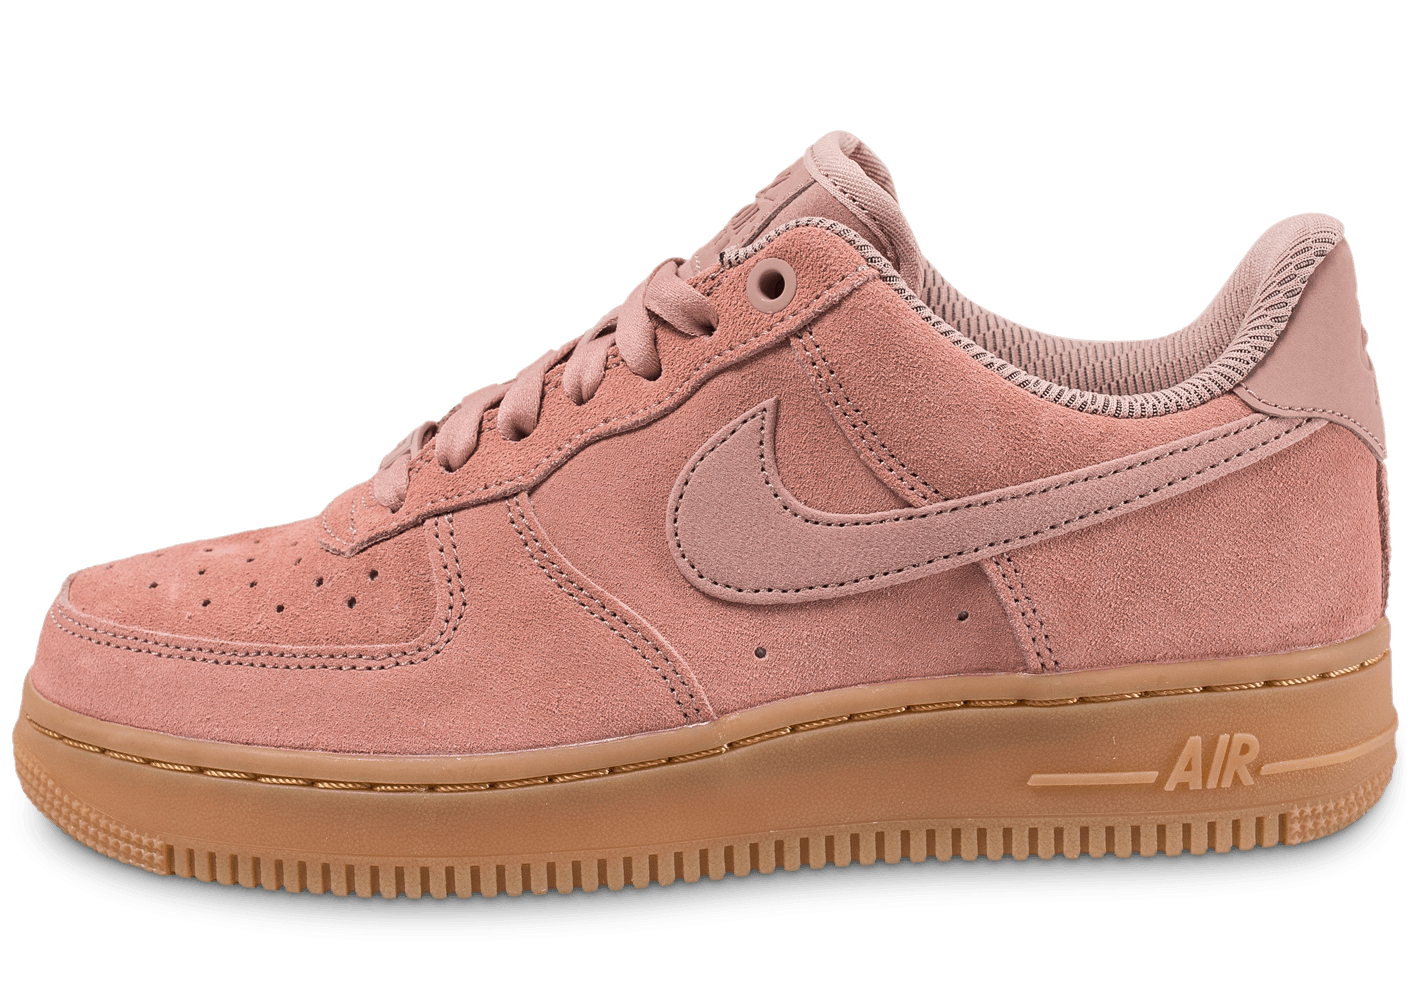 brand new b15e8 64b0c air force 1 rose, Nike Air Force 1 Low 07 SE W rose Particle Pink